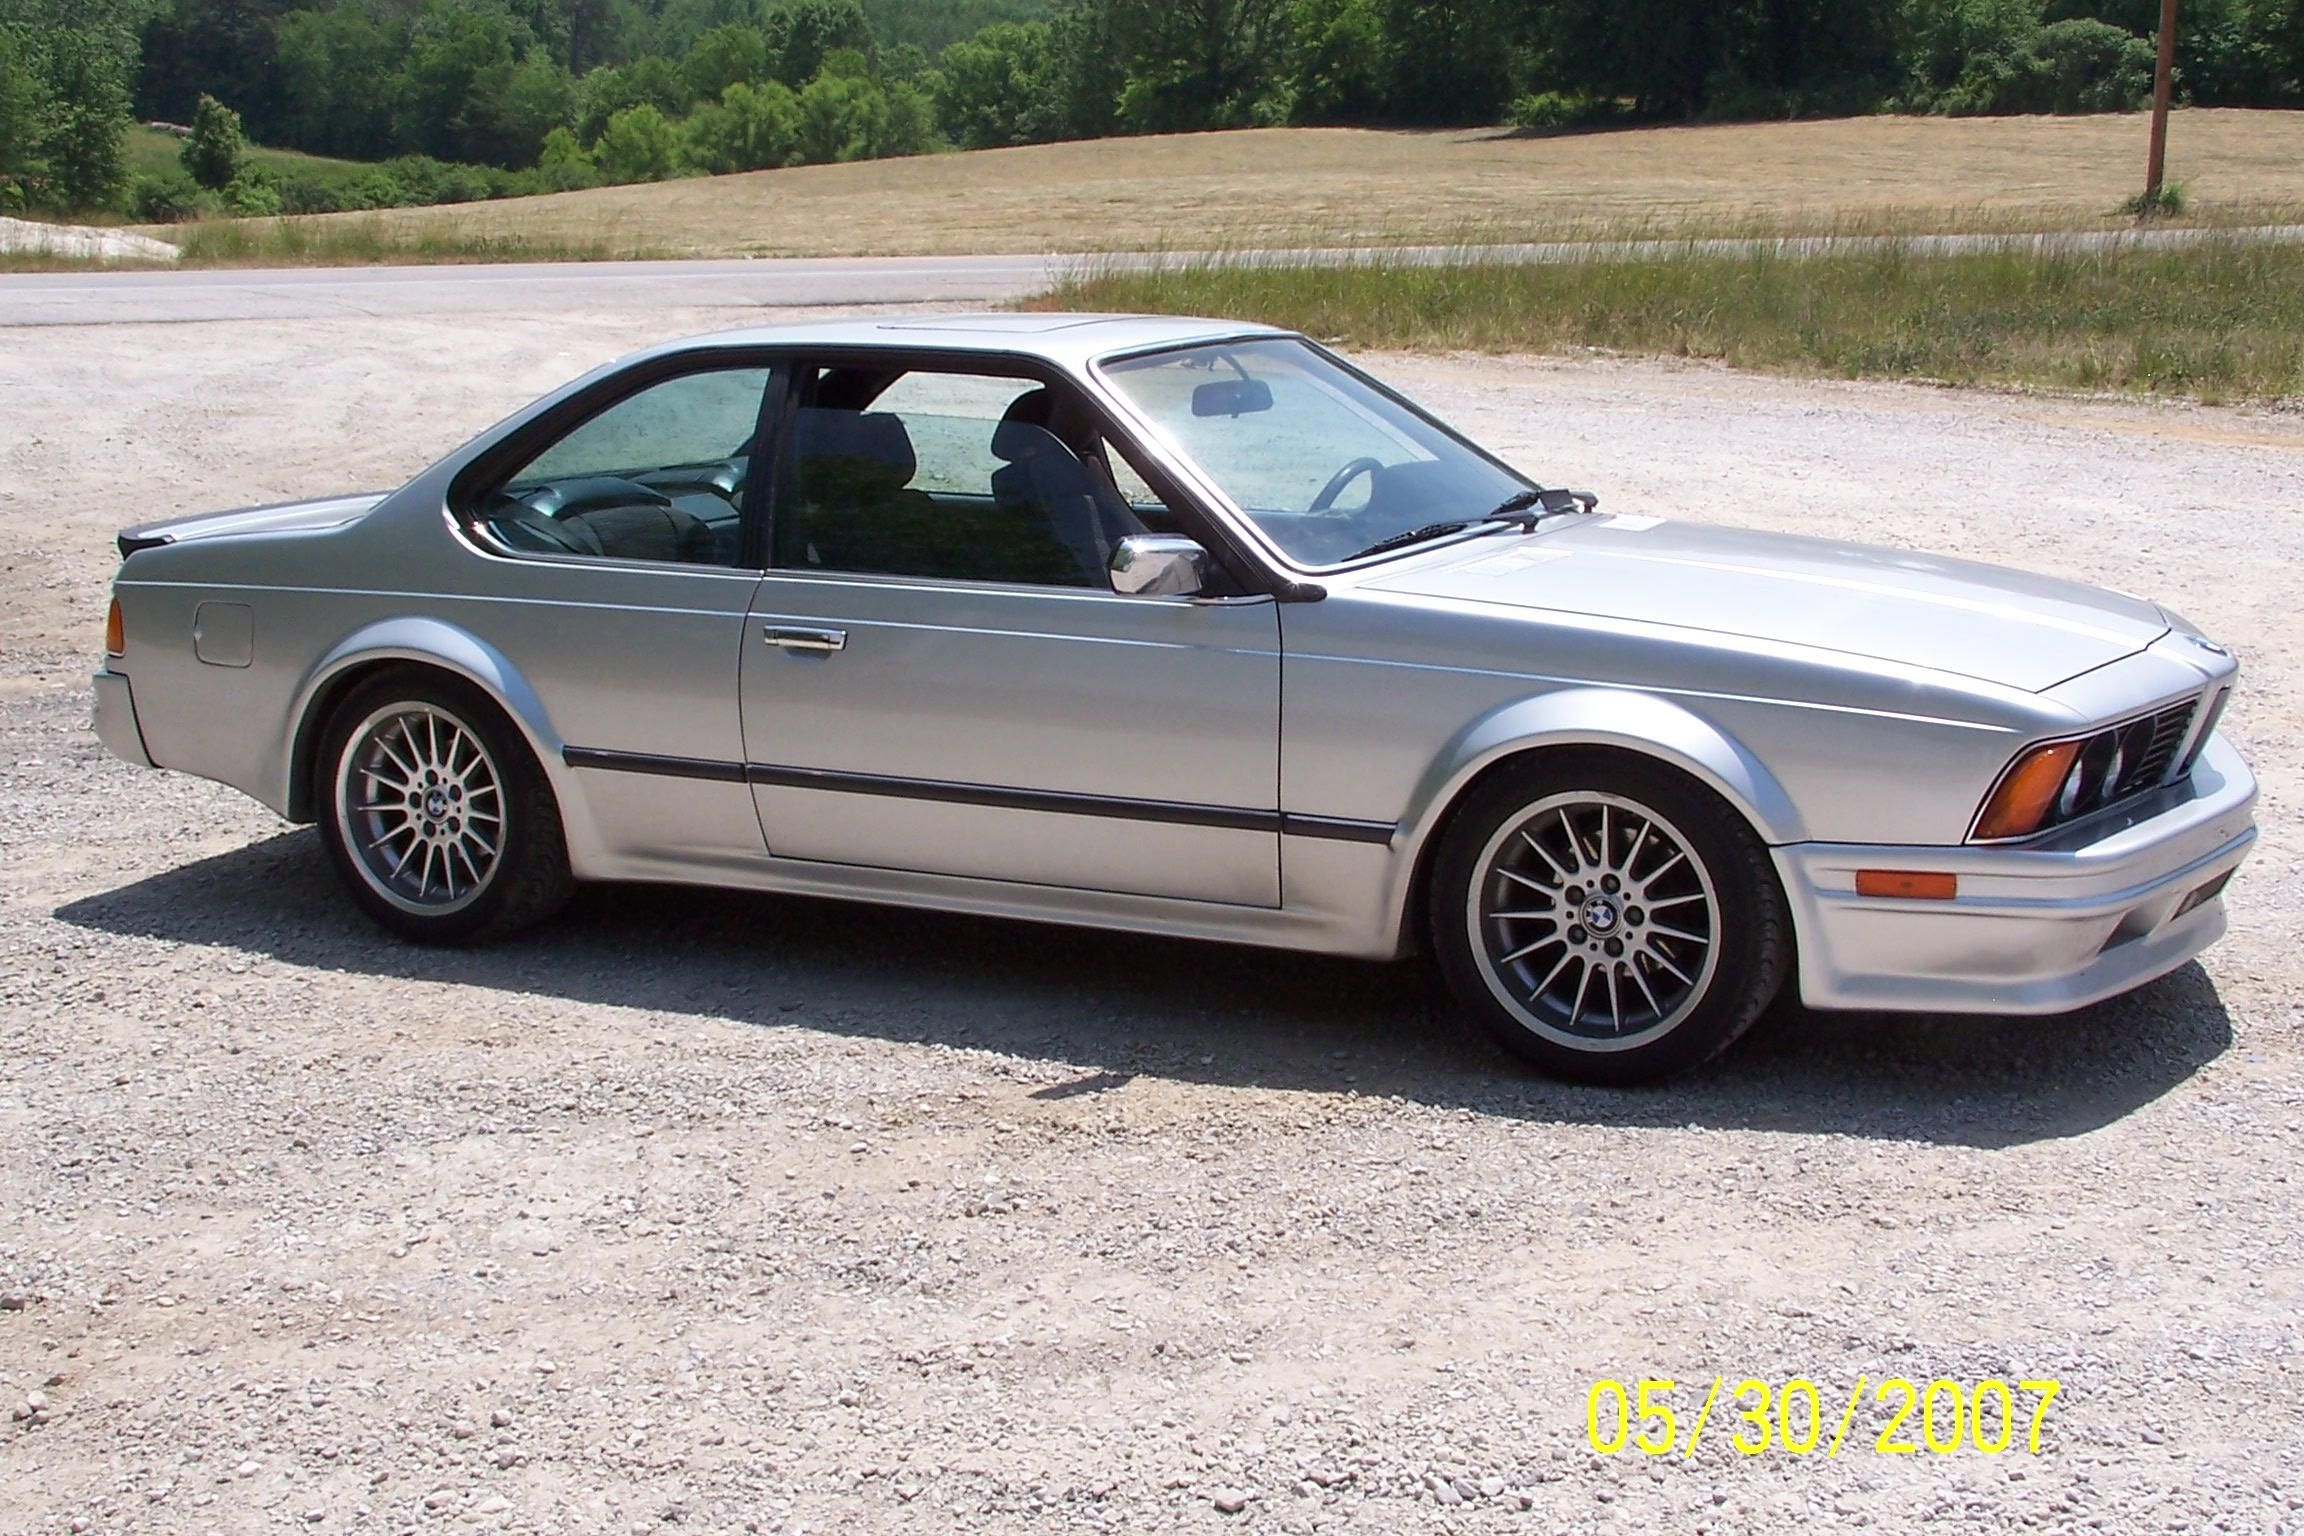 1985 Ish Bmw 635csi Wheels Are The Oem Quot Style 32 Quot Off Of